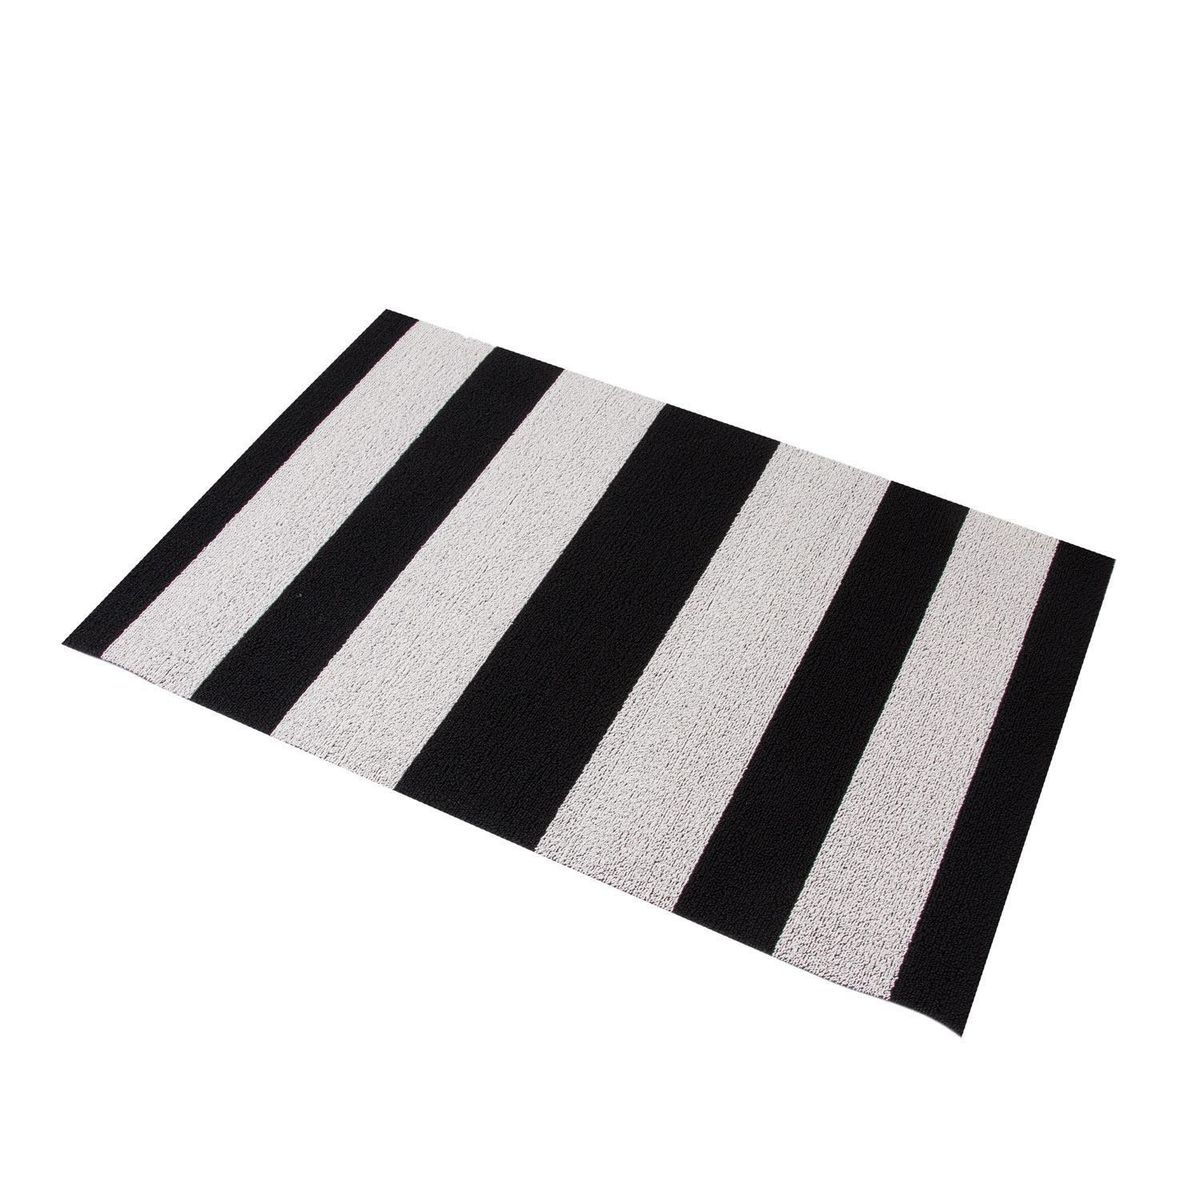 shag bold stripe door mat xcm  chilewich  ambientedirectcom - chilewich  shag bold stripe door mat  blackwhitexcm